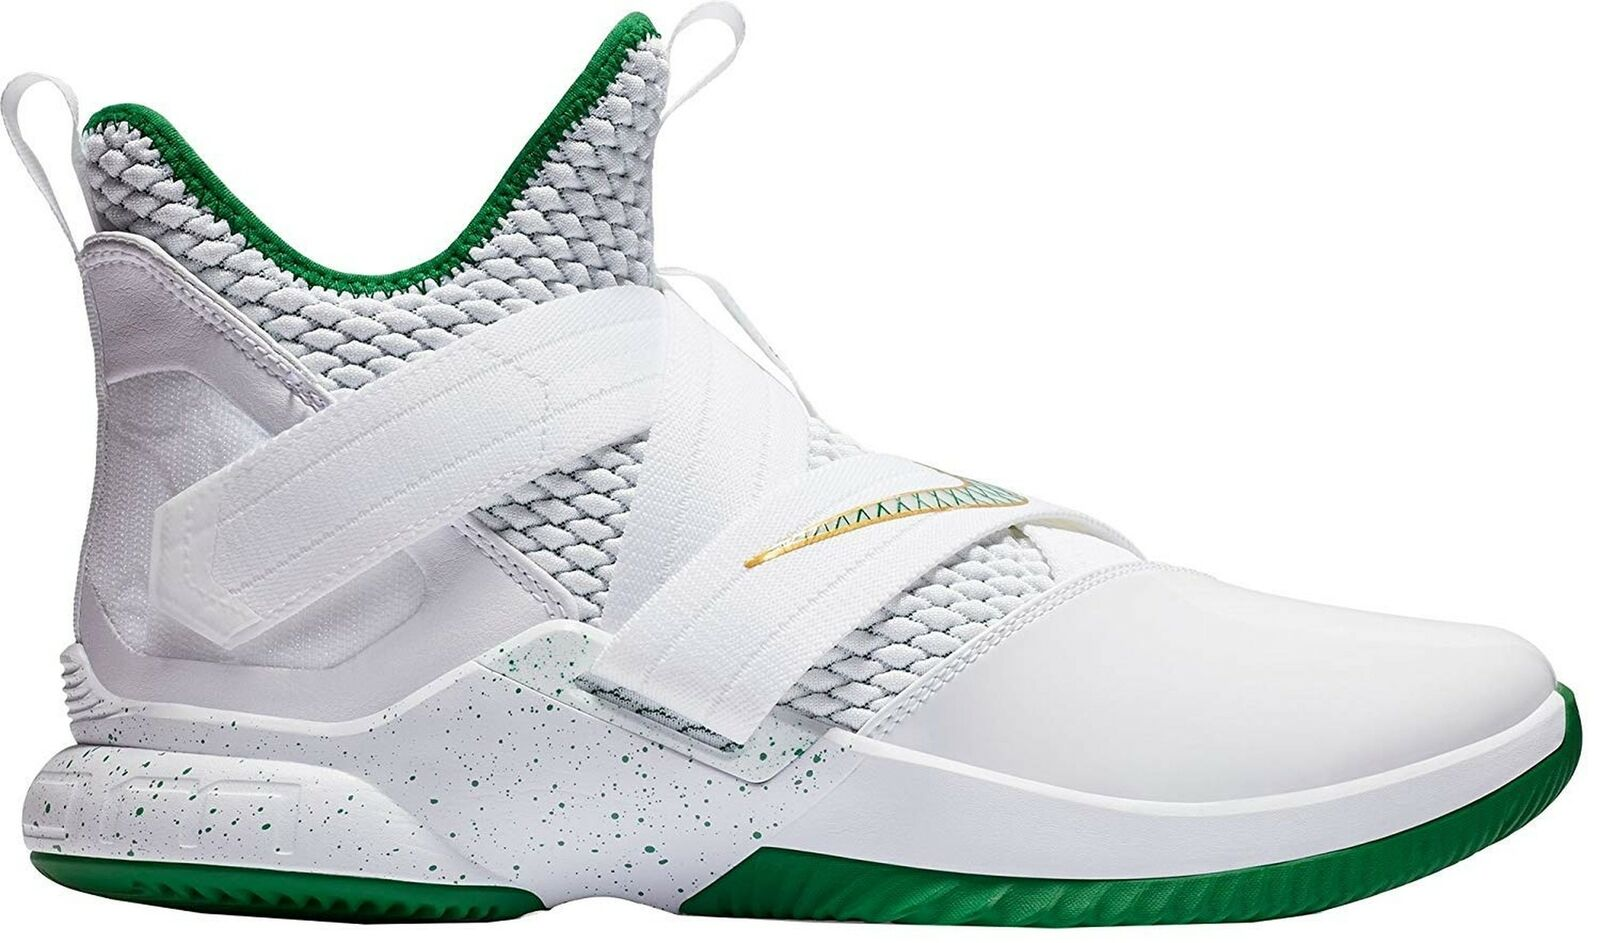 Nike Lebron Soldier XII Mens Ao2609-100 Size 11.5 White Multi-color